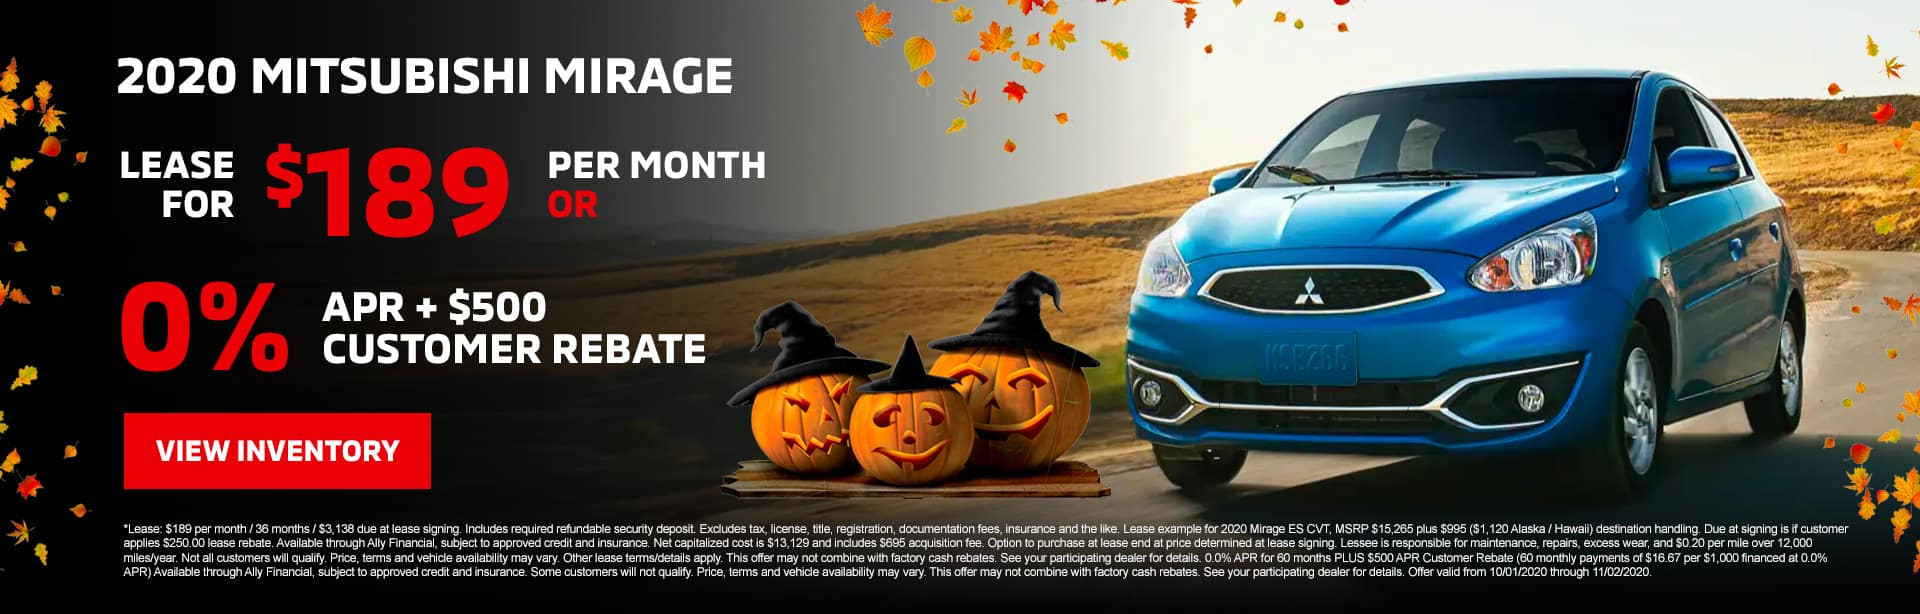 2020 Mitsubishi Mirage Lease for $189/mo with $3,138 due at signing OR 0.0% APR + $500 Customer Rebate